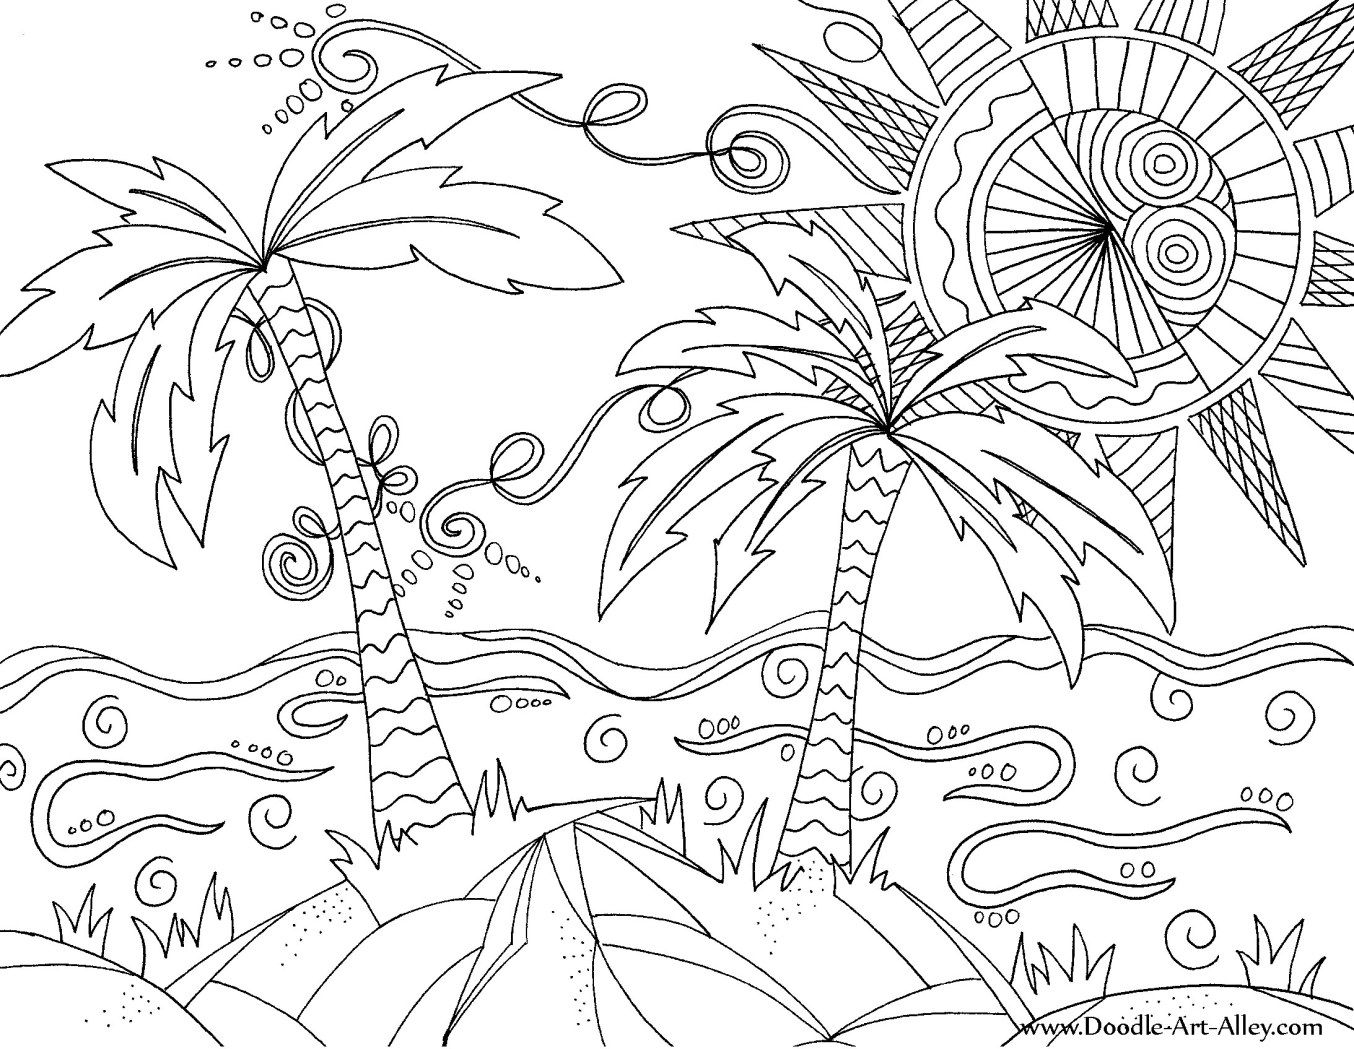 Free File Sharing And Storage Made Simple Summer Coloring Pages Beach Coloring Pages Coloring Pages